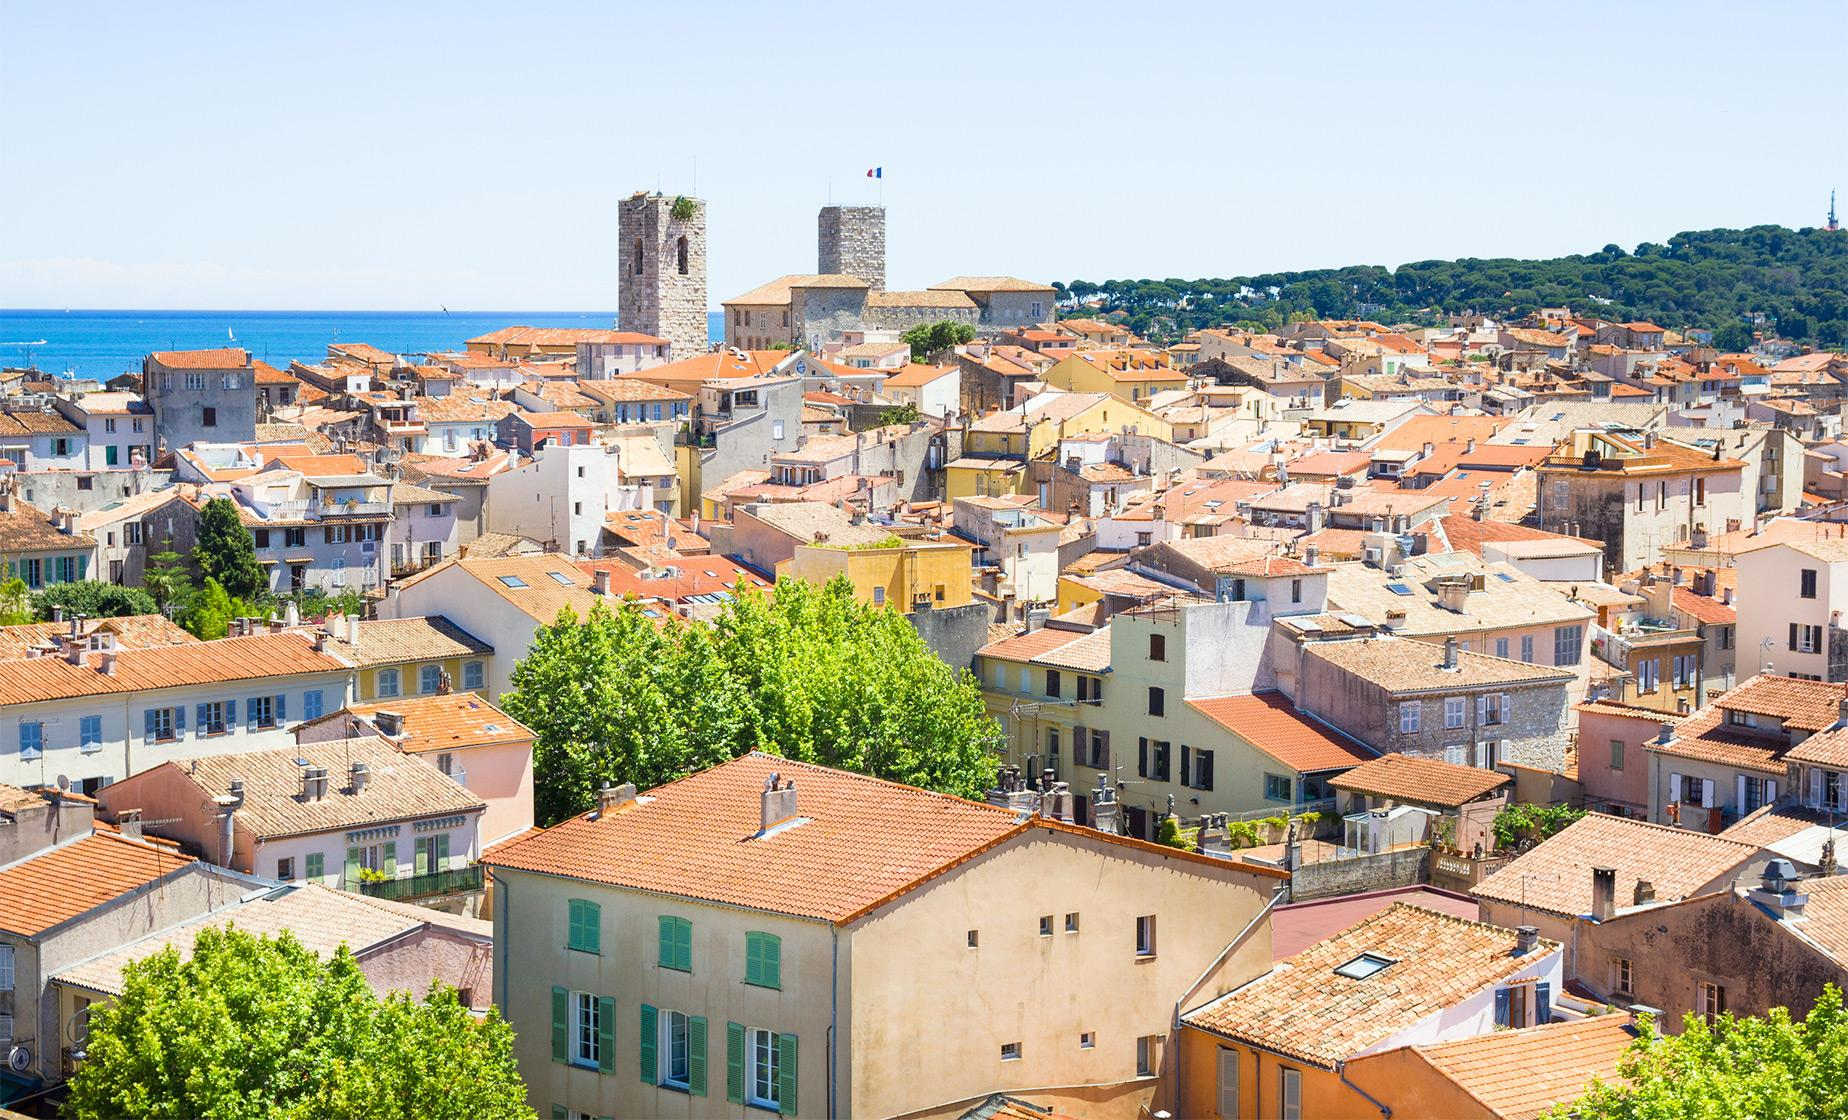 Cannes, Antibes and St. Paul de Vence Tour (Croisette Boulevard, Film Festival Palace)